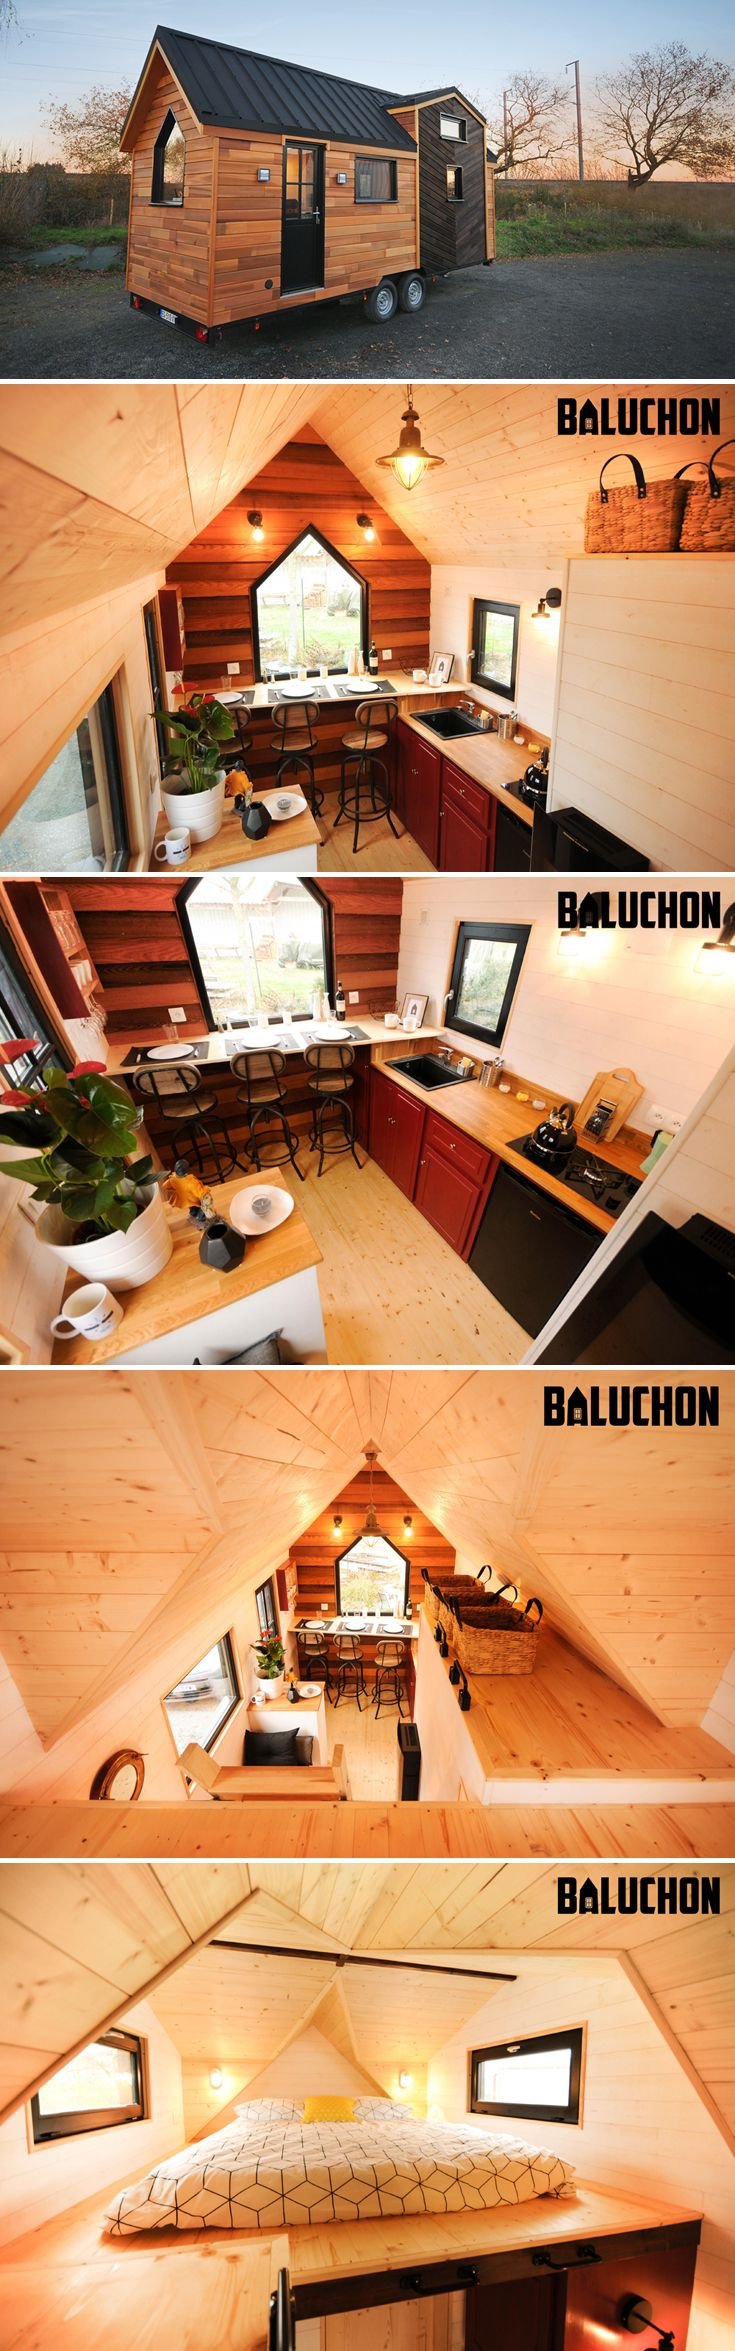 The Calypso is a traditional tiny house built by Baluchon in Nantes, France. The cedar exterior has a Yakisugi highlight, giving it a distinctive design.